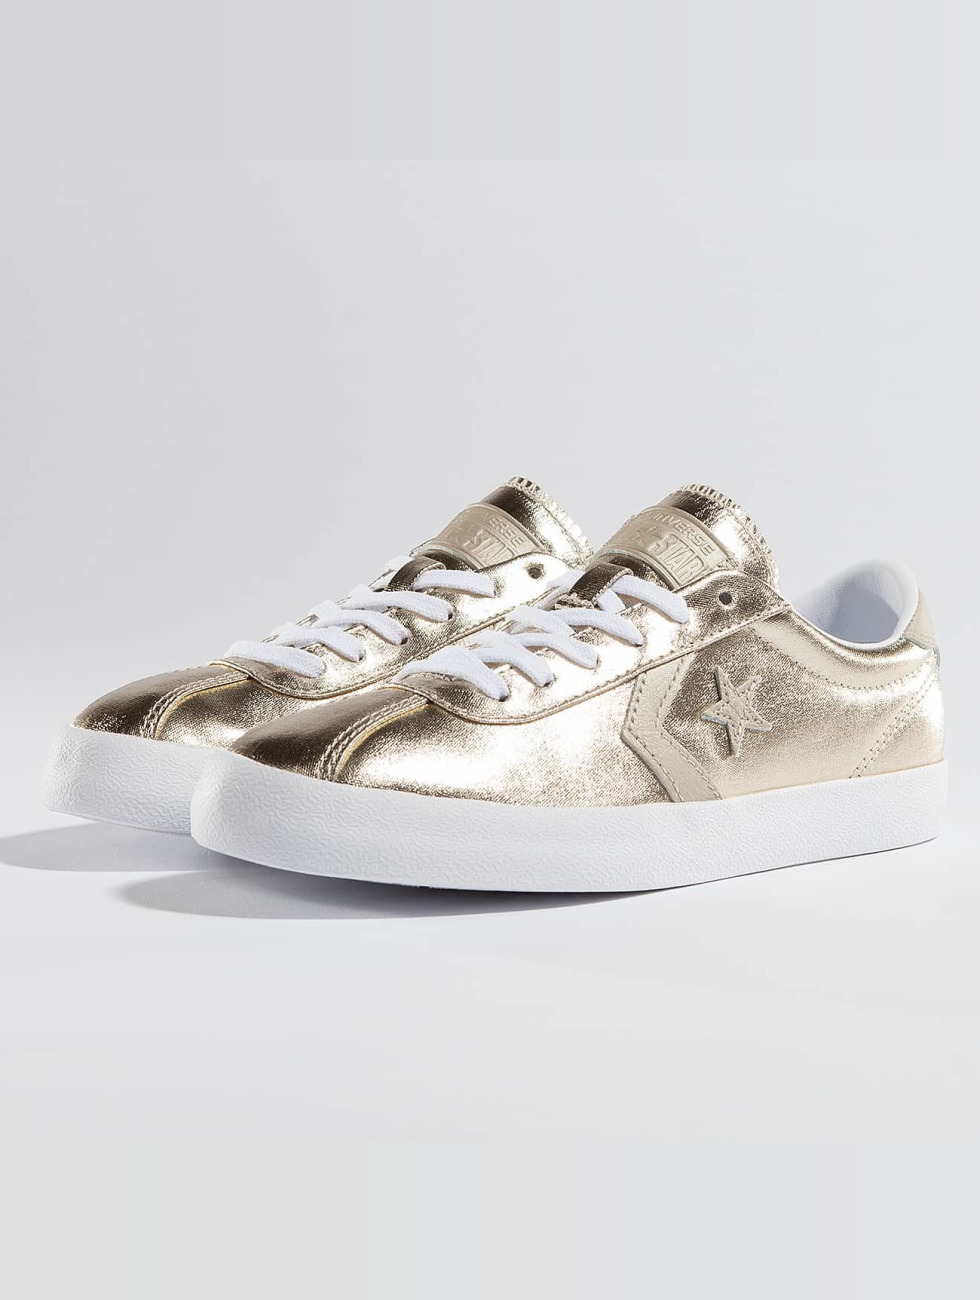 factory authentic 24b21 558d7 Converse Breakpoint Ox Sneakers Light Goldencolored/White/White